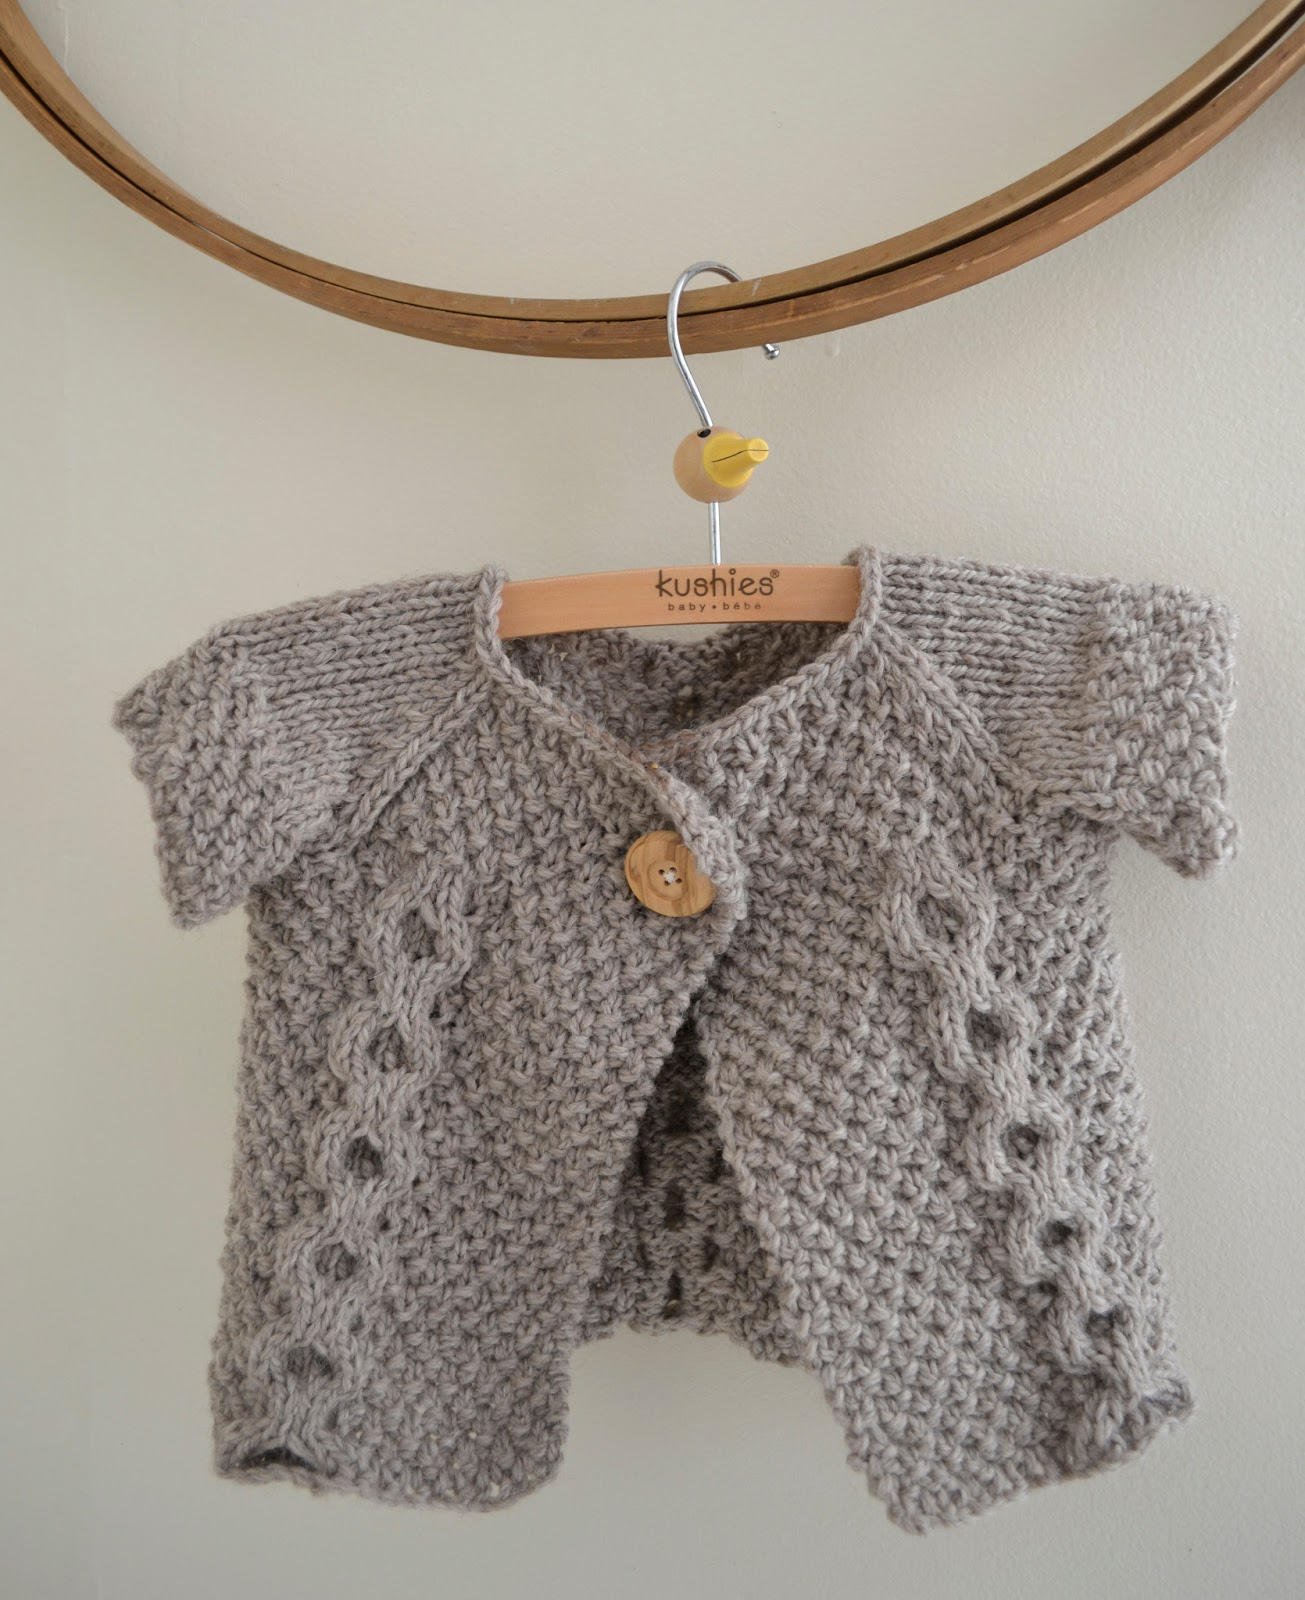 Patterns For Knitting : Baby Sweater Knitting Pattern A Knitting Blog